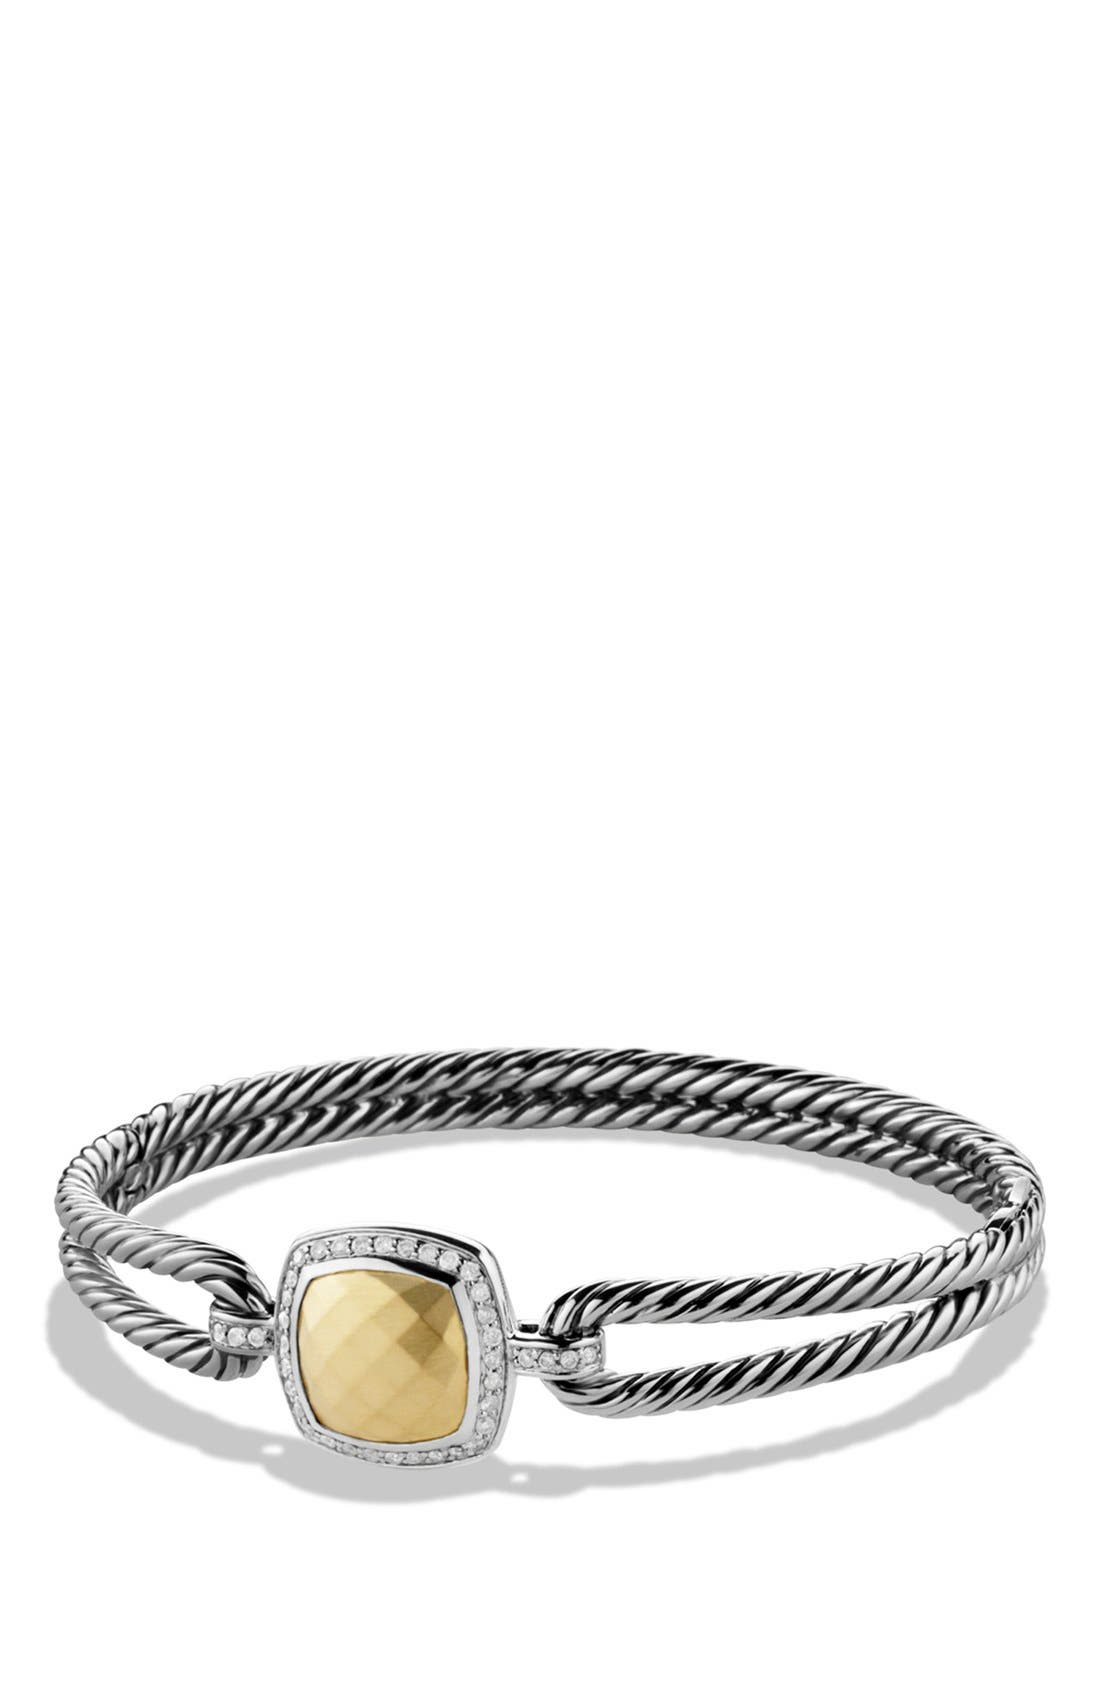 'Albion' Bracelet with Diamonds and Gold,                         Main,                         color, Gold Dome